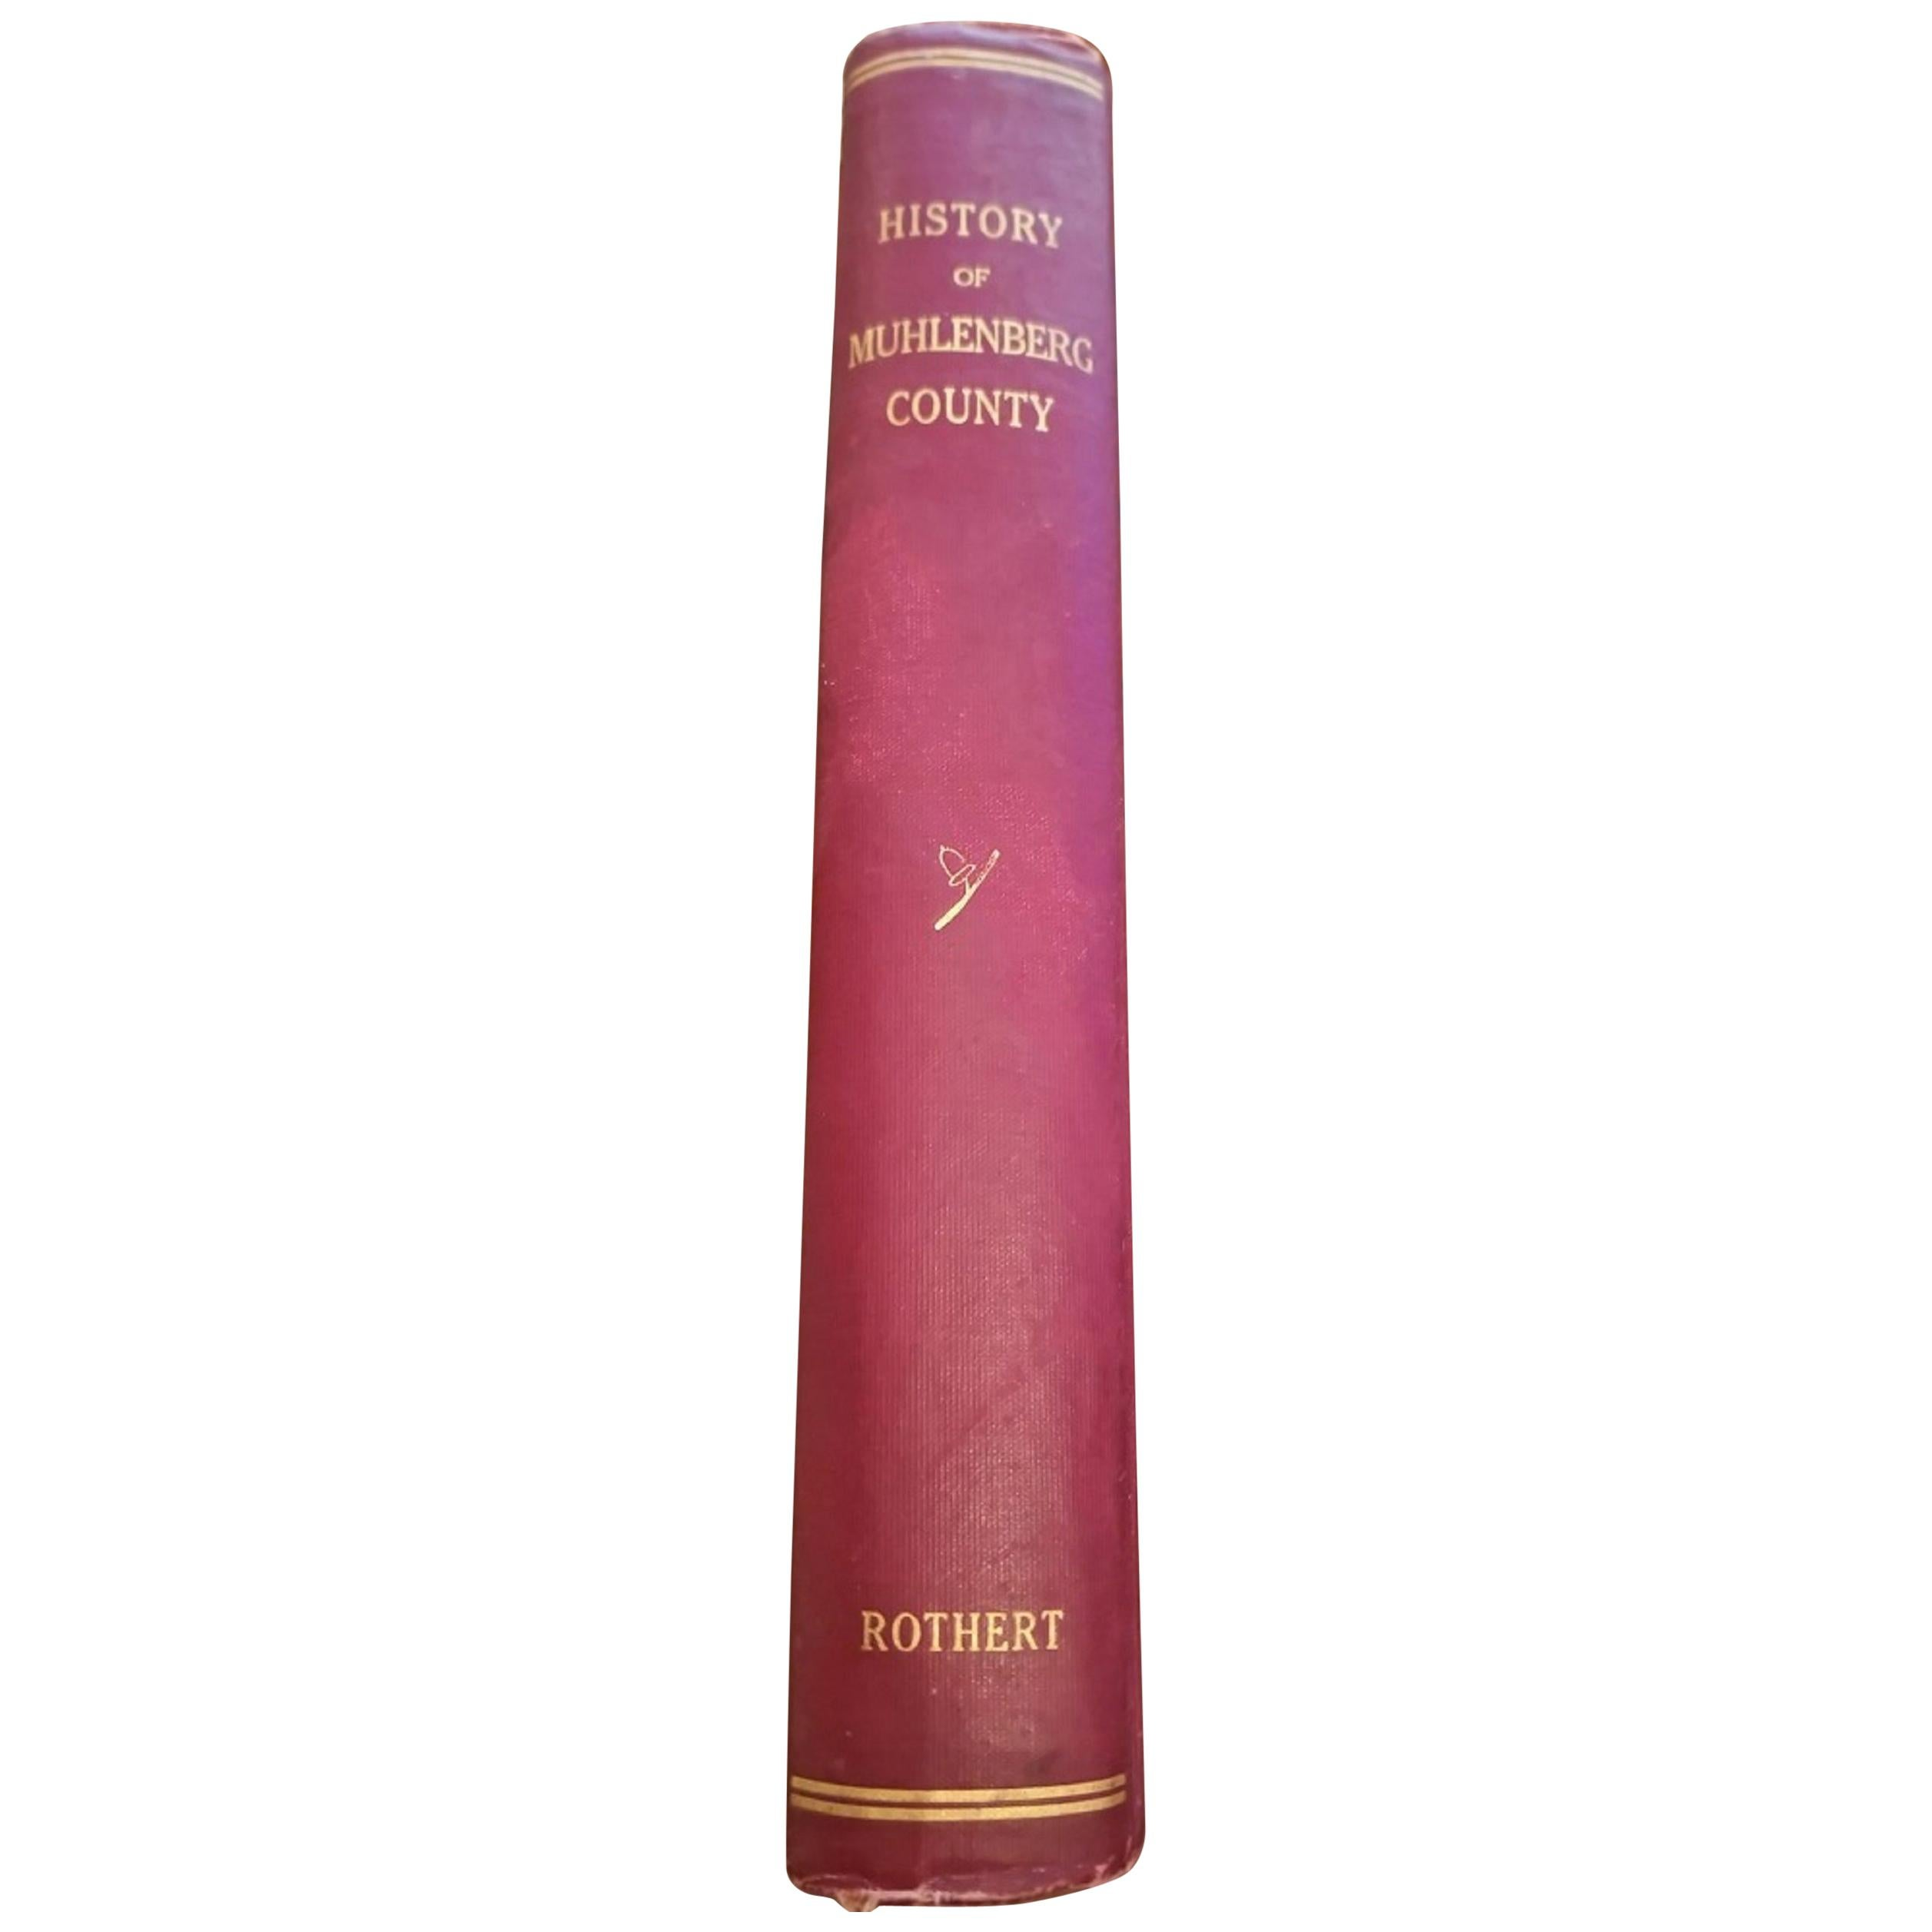 History of Muhlenberg County Kentucky by O.A. Rothert 1913